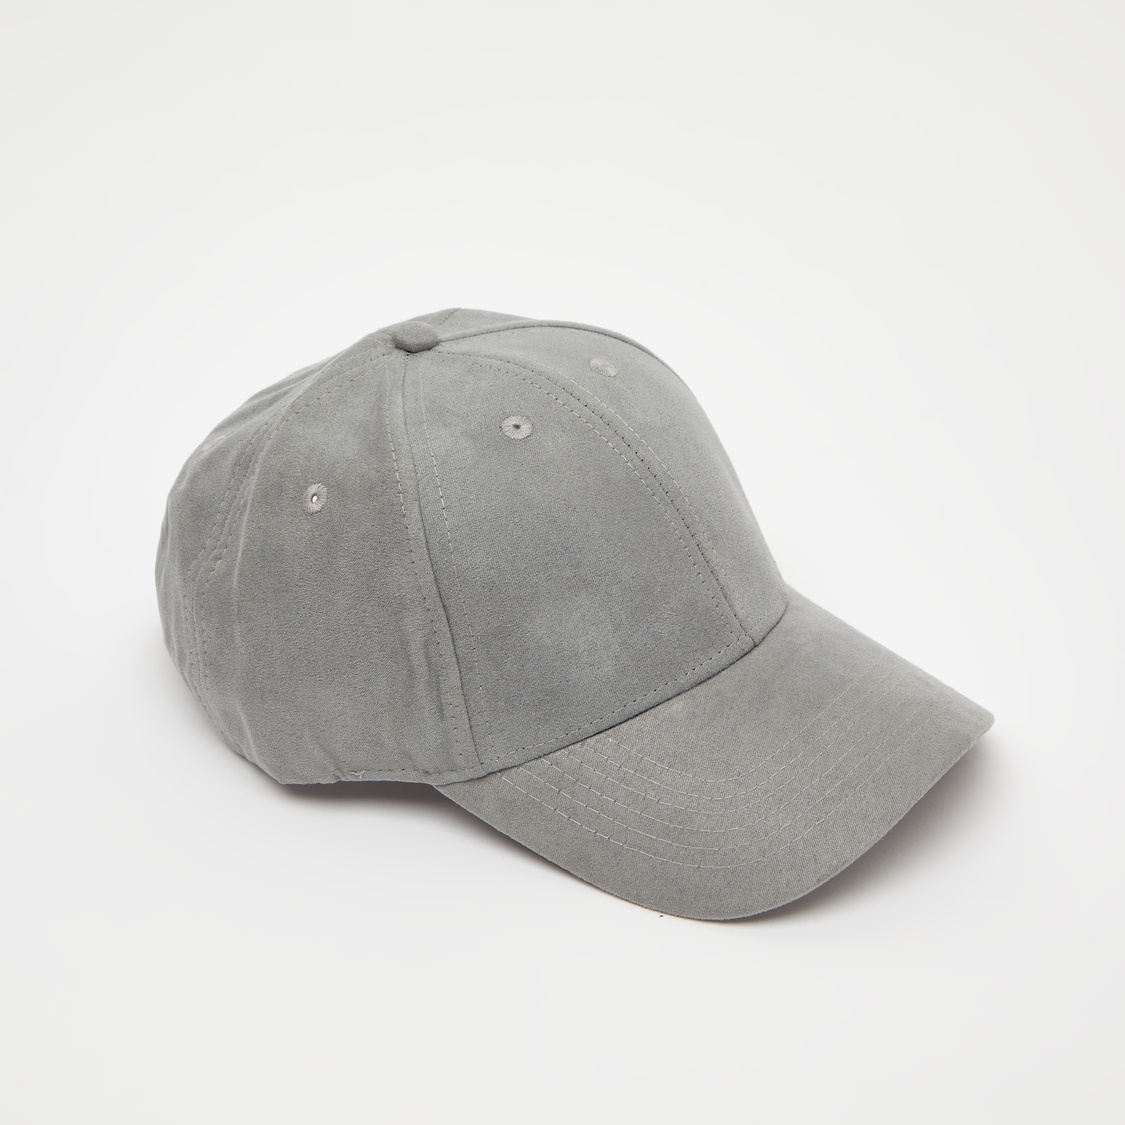 Solid Cap with Stitch Detailing